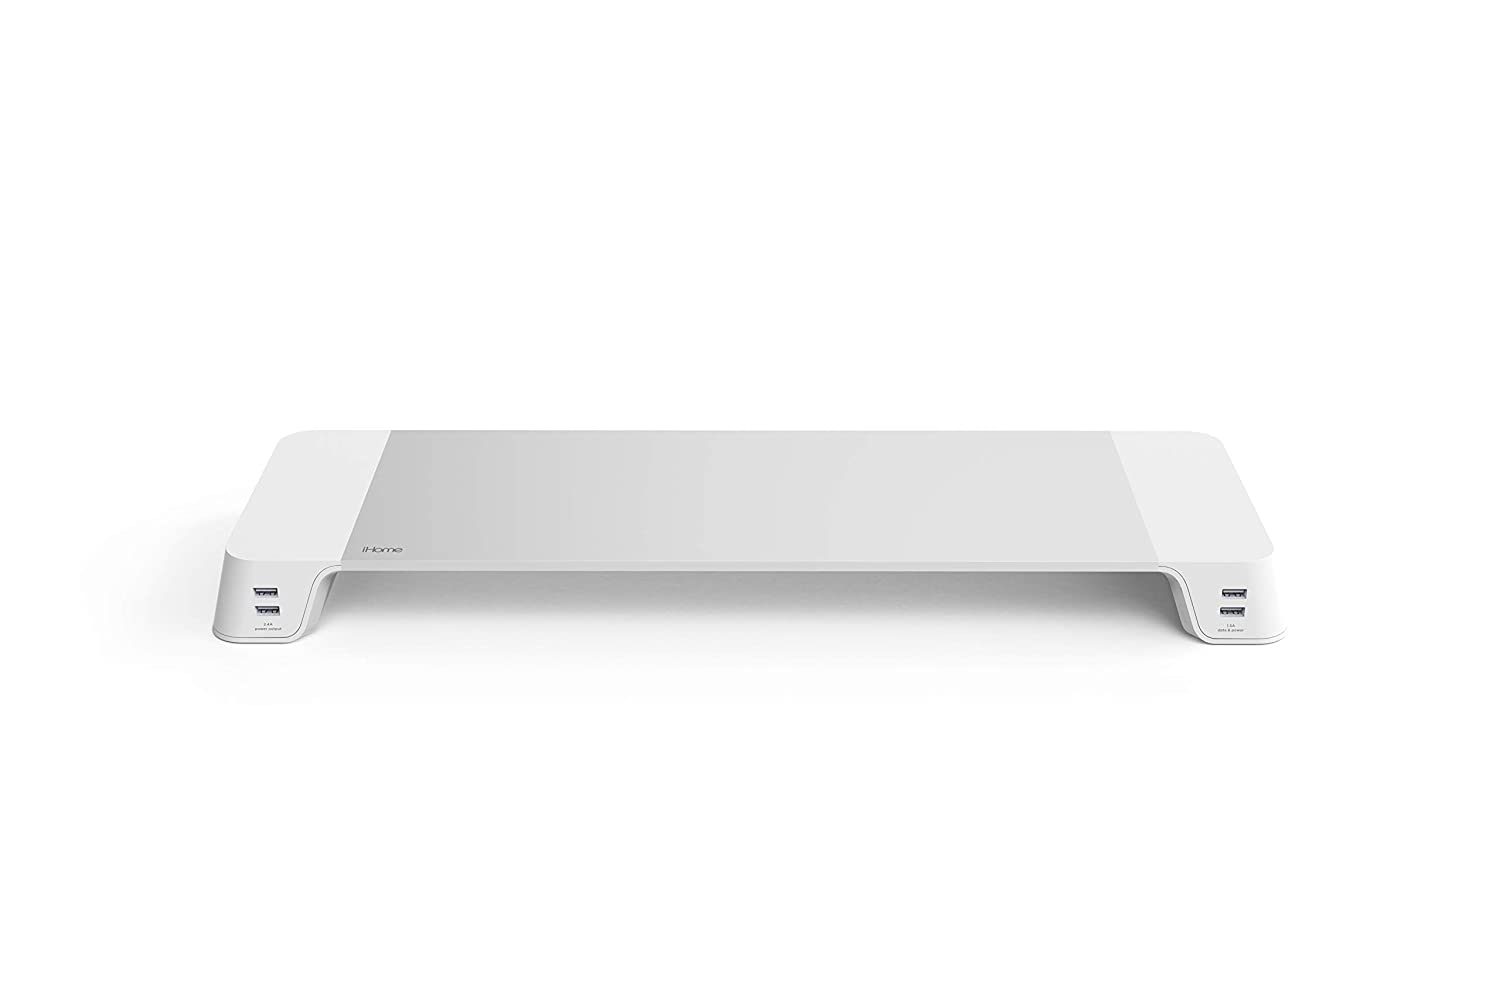 Computer Monitor Riser with USB Ports: iHome Monitor Stand with 4 Port USB Hub - Laptop, Computer Screen, or Small TV Shelf for Office Desk Organization - Single Desktop Riser with Built-in USB Ports